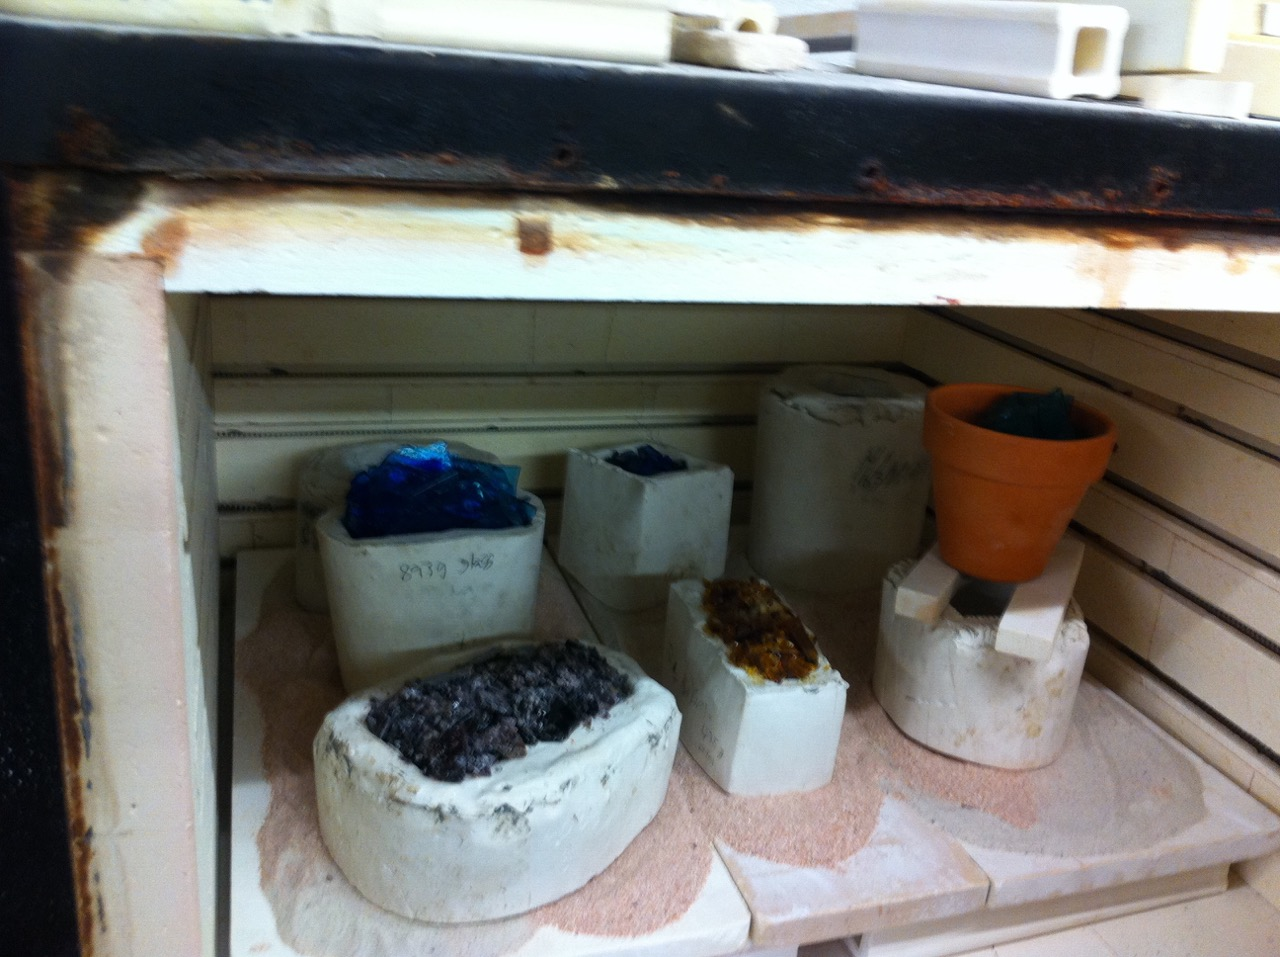 A kiln full of student casting projects